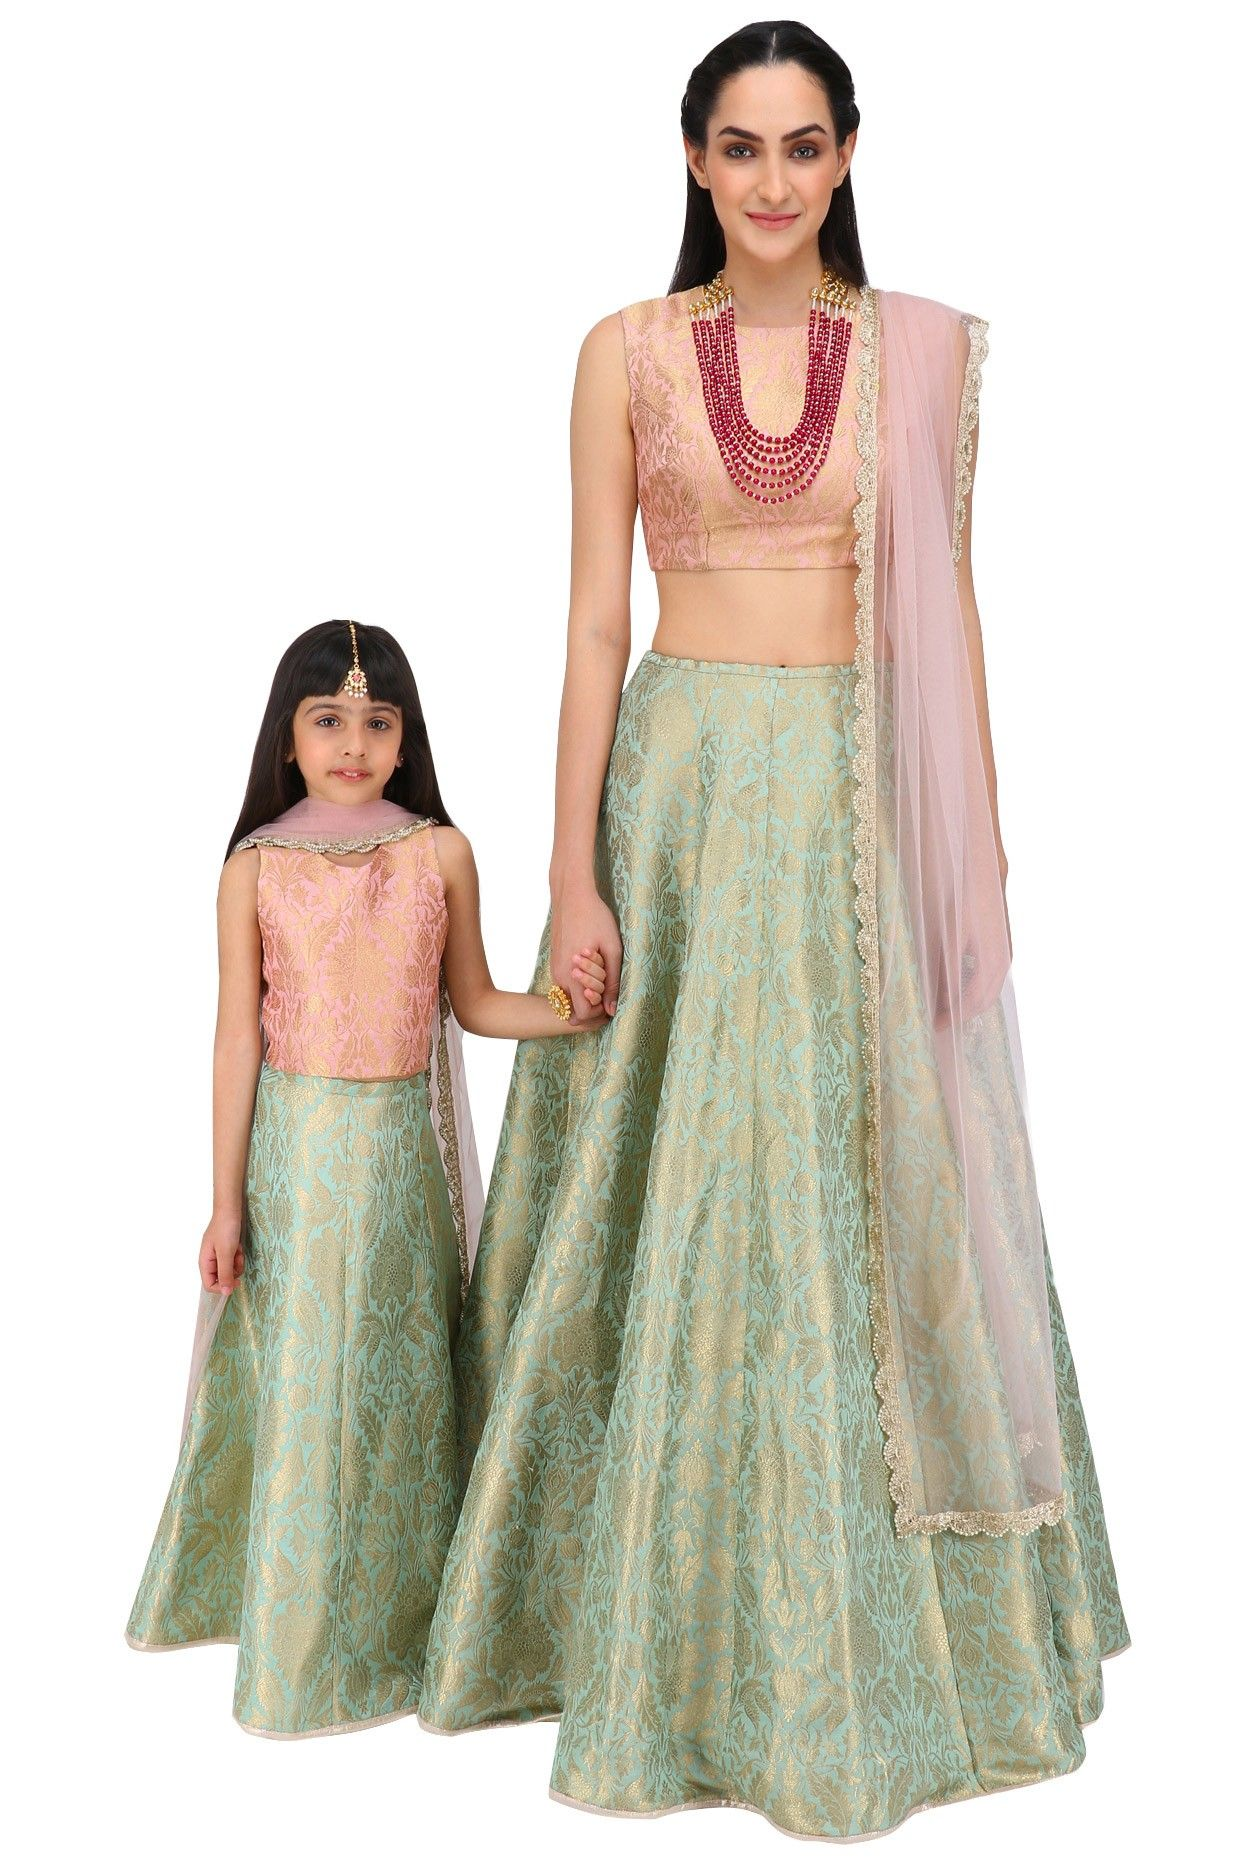 dda8cef41f Mother and Daughter dusky rose and mint lehenga set available only at  Pernia's Pop Up Shop.